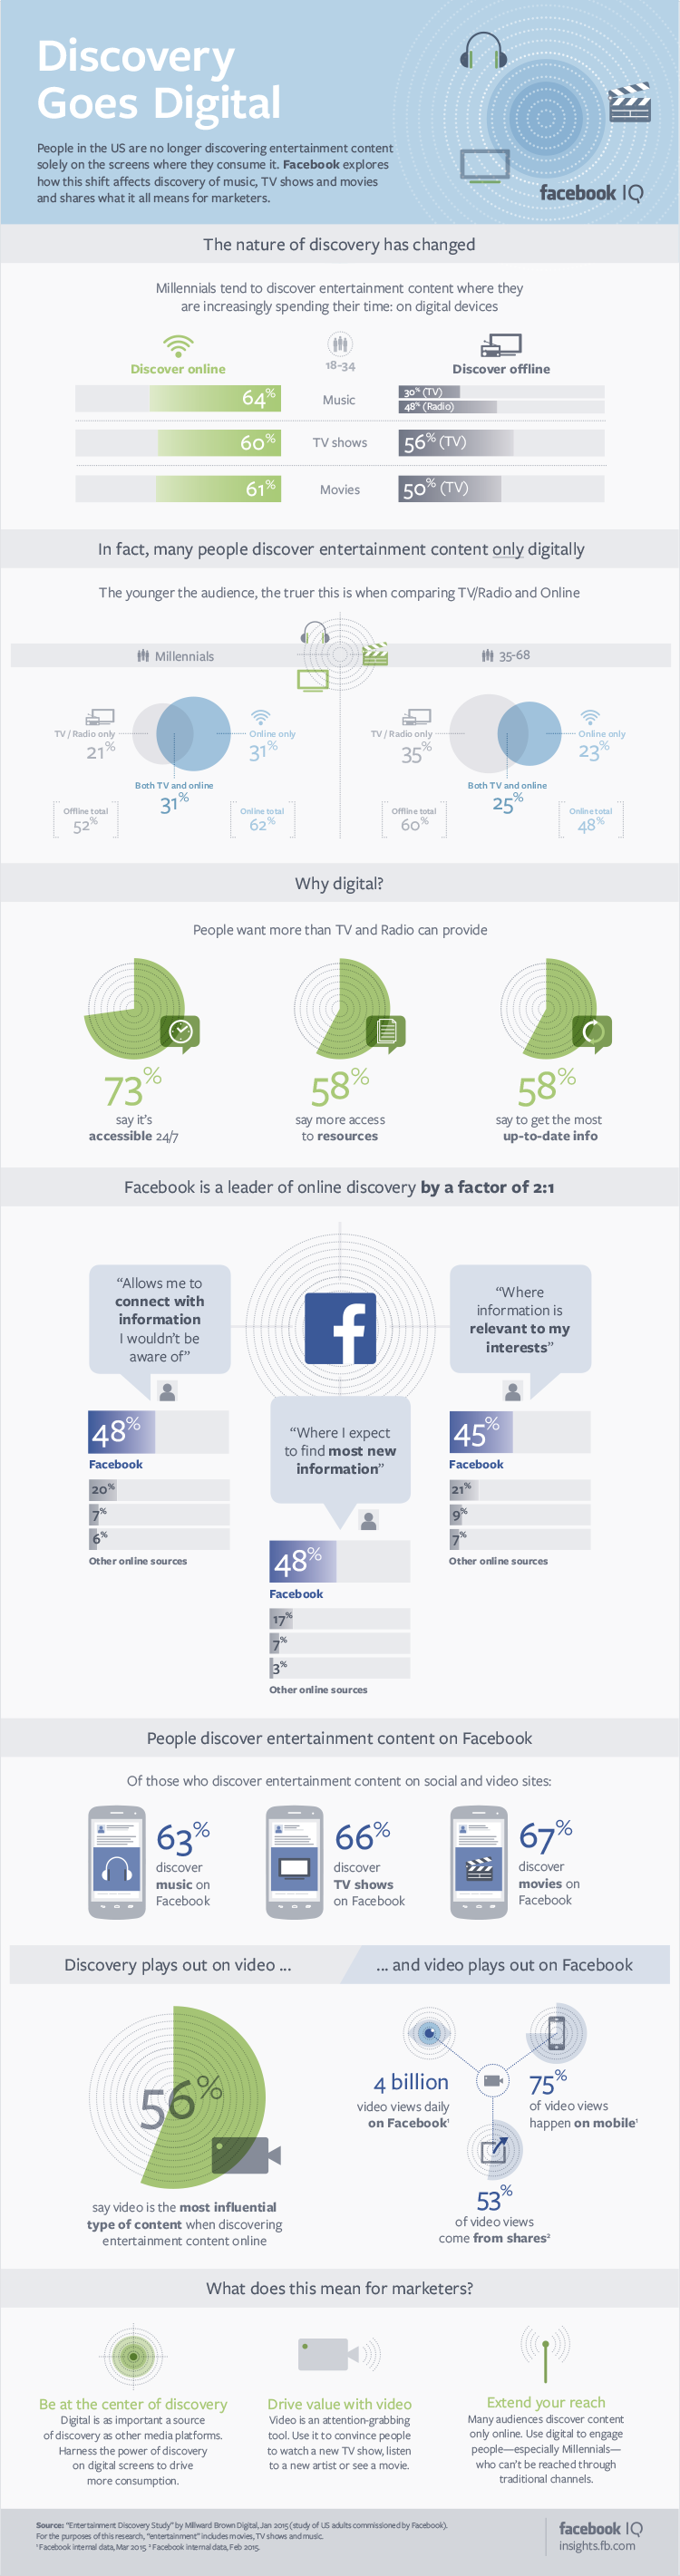 Facebook Leads Digital Discovery of Entertainment